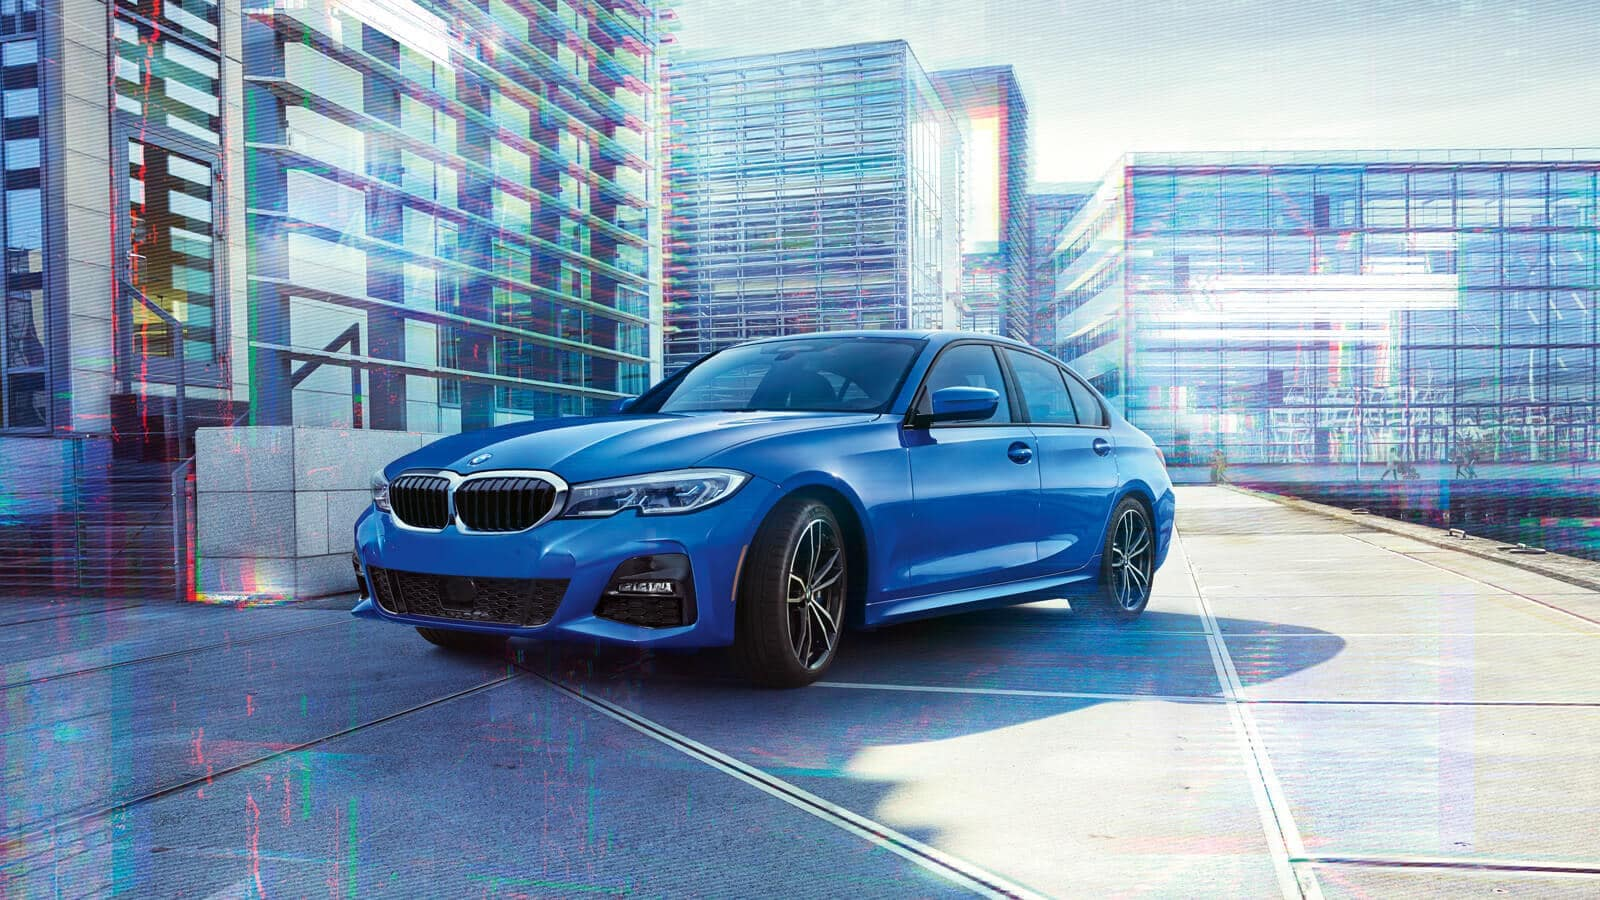 2019 Bmw 3 Series Model Info Bmw Of Escondido